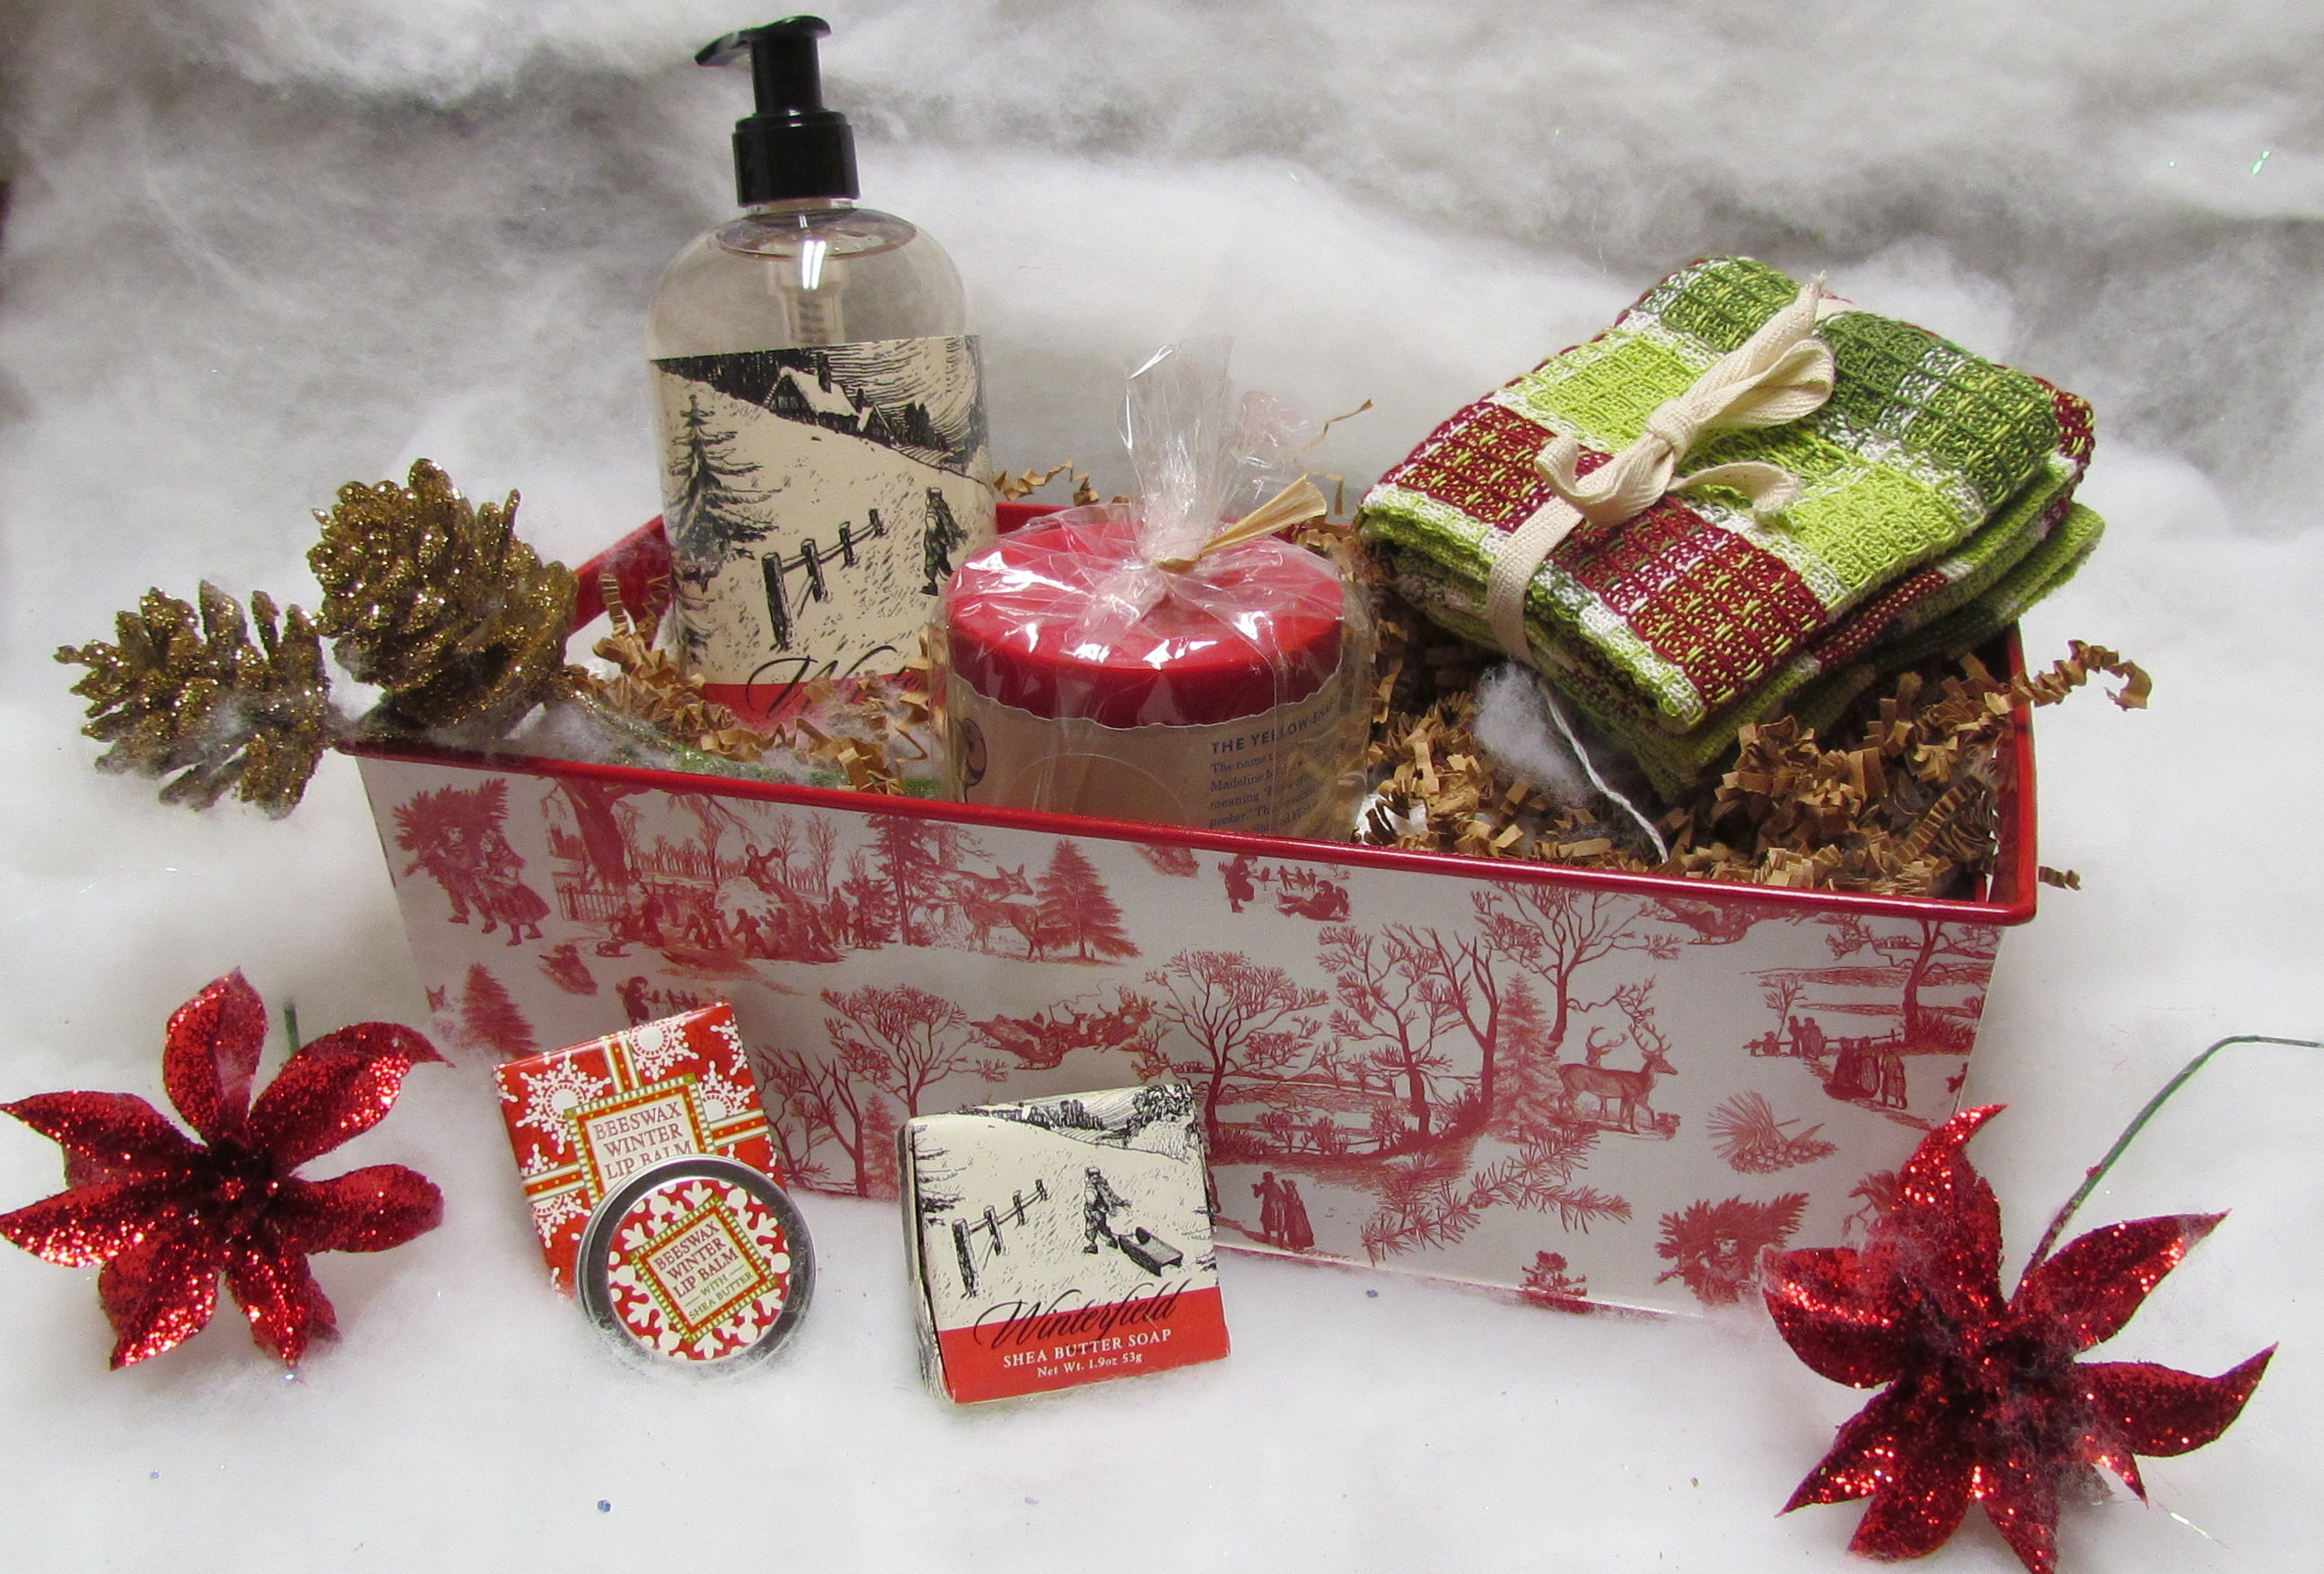 Beautifully gift-wrapped holiday boxes, in snow background